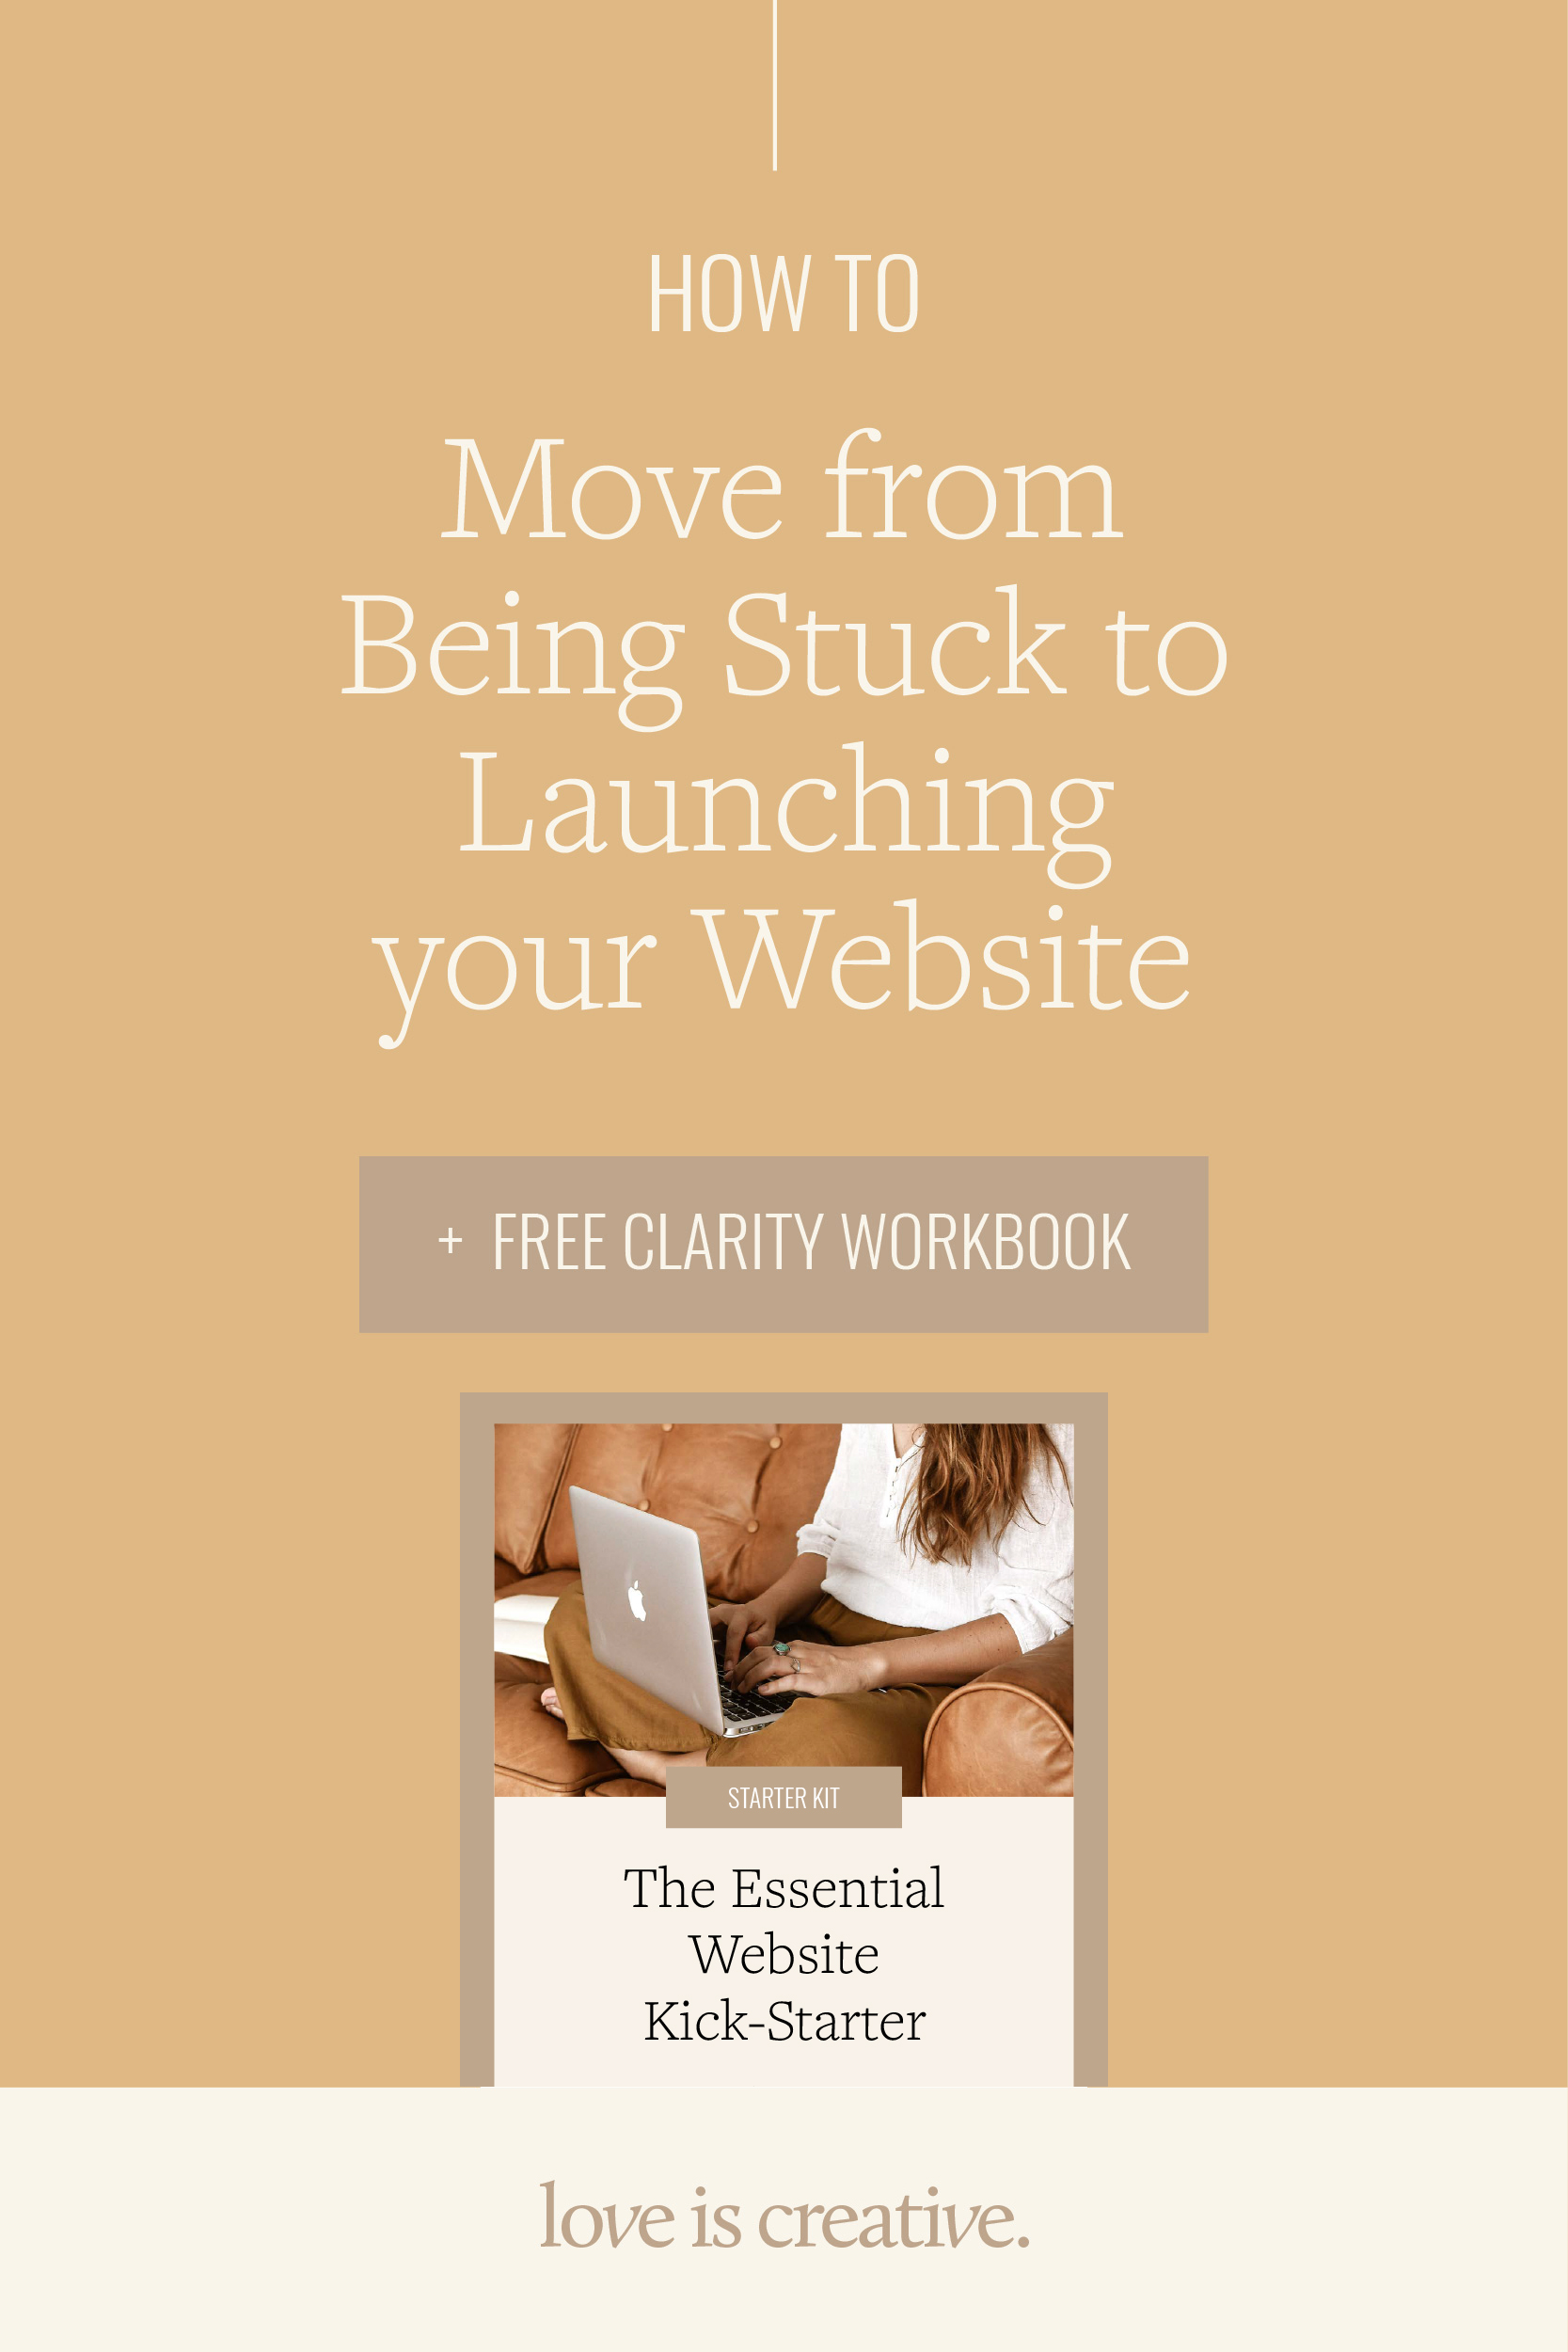 How to Move from Being Stuck to Launching your Website